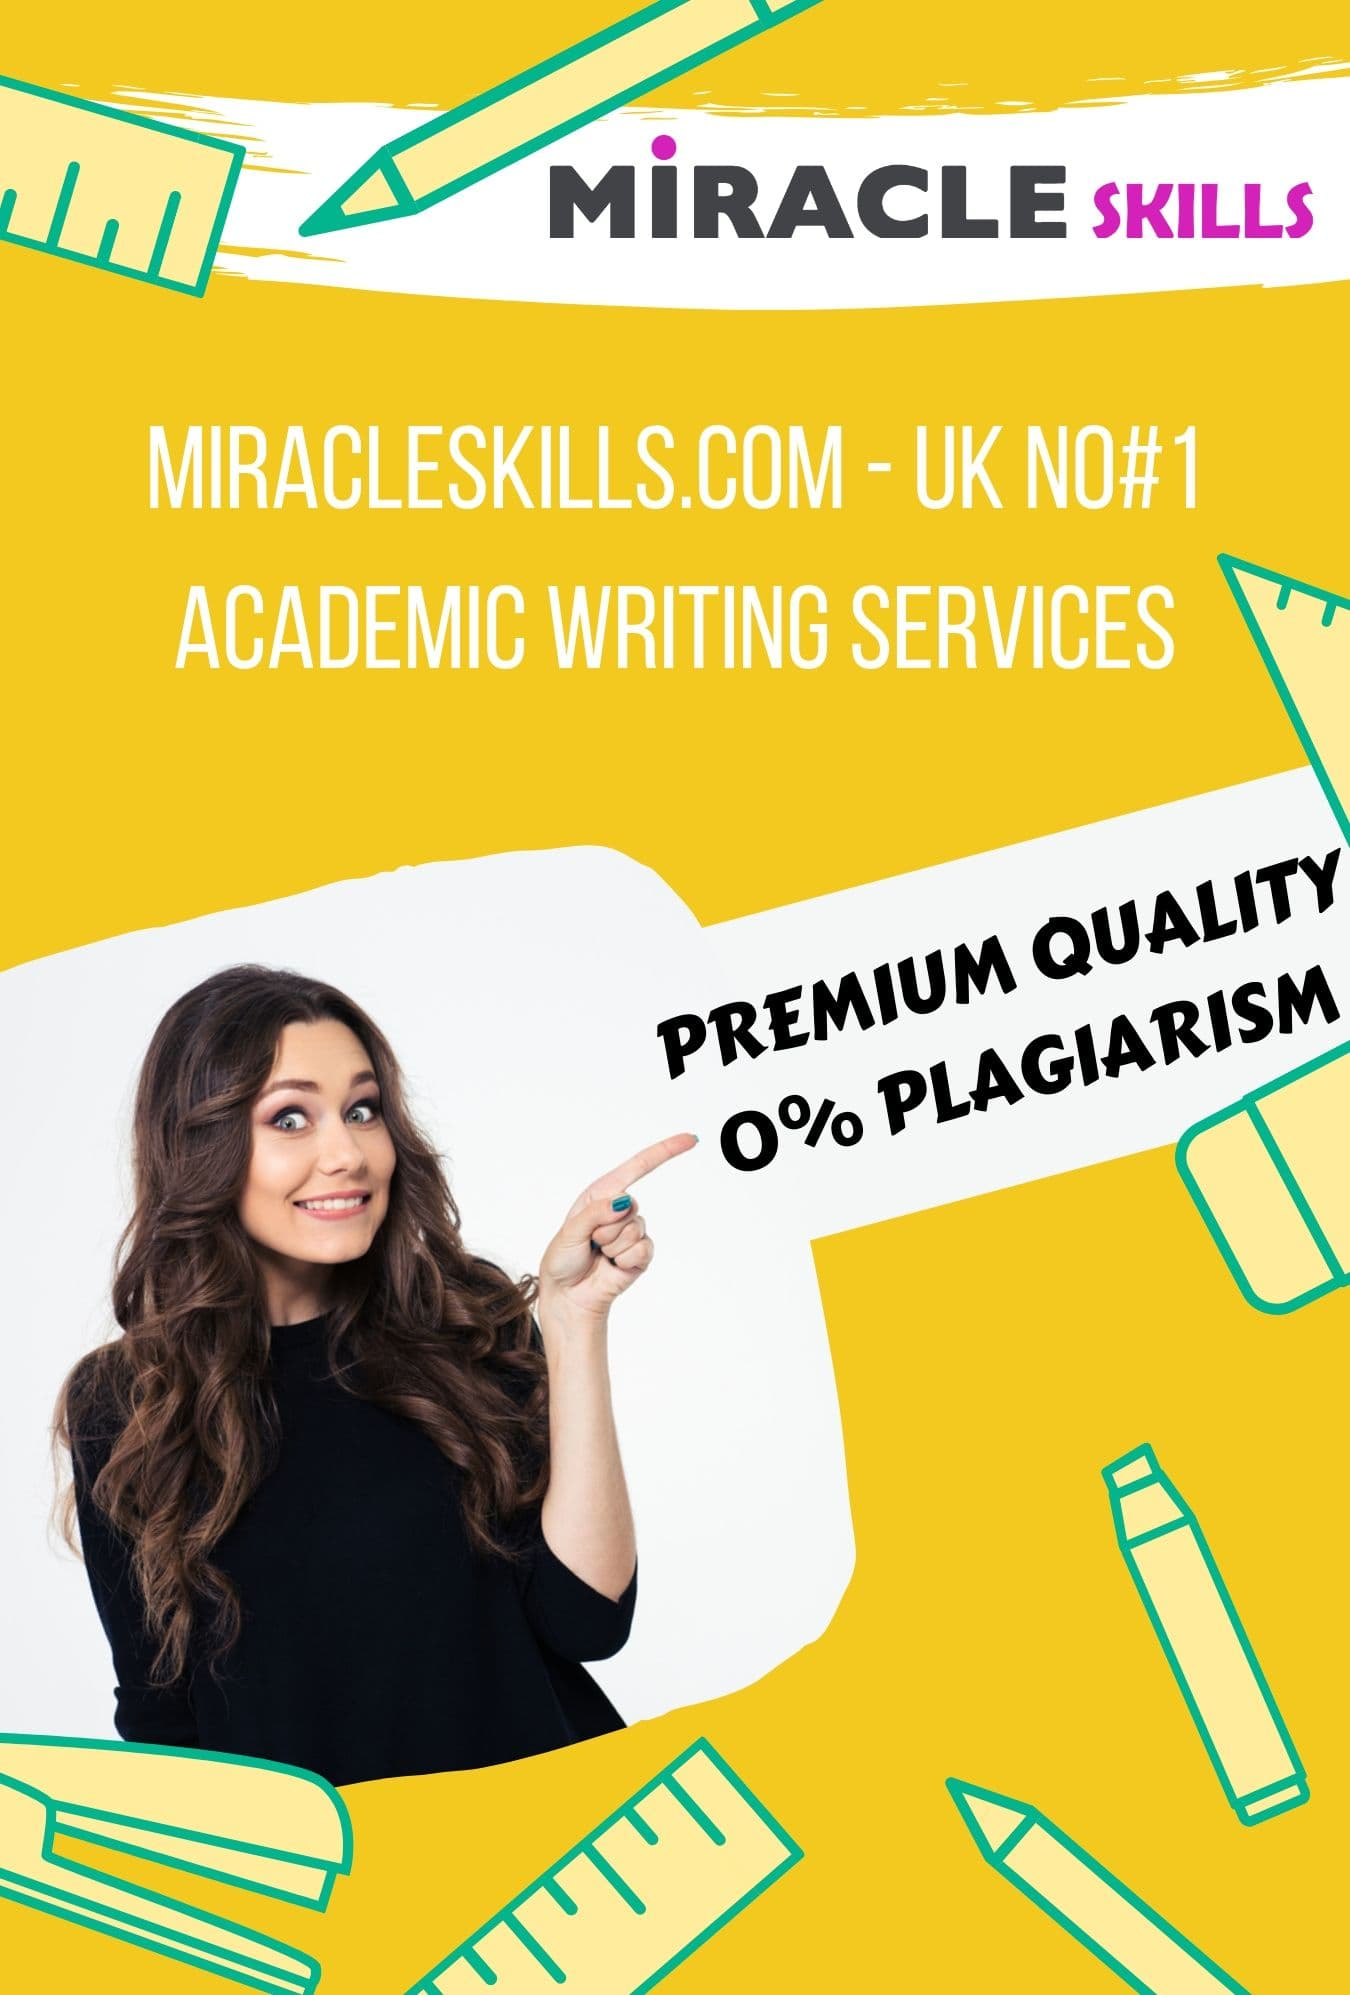 UK No#1 Assignment Help